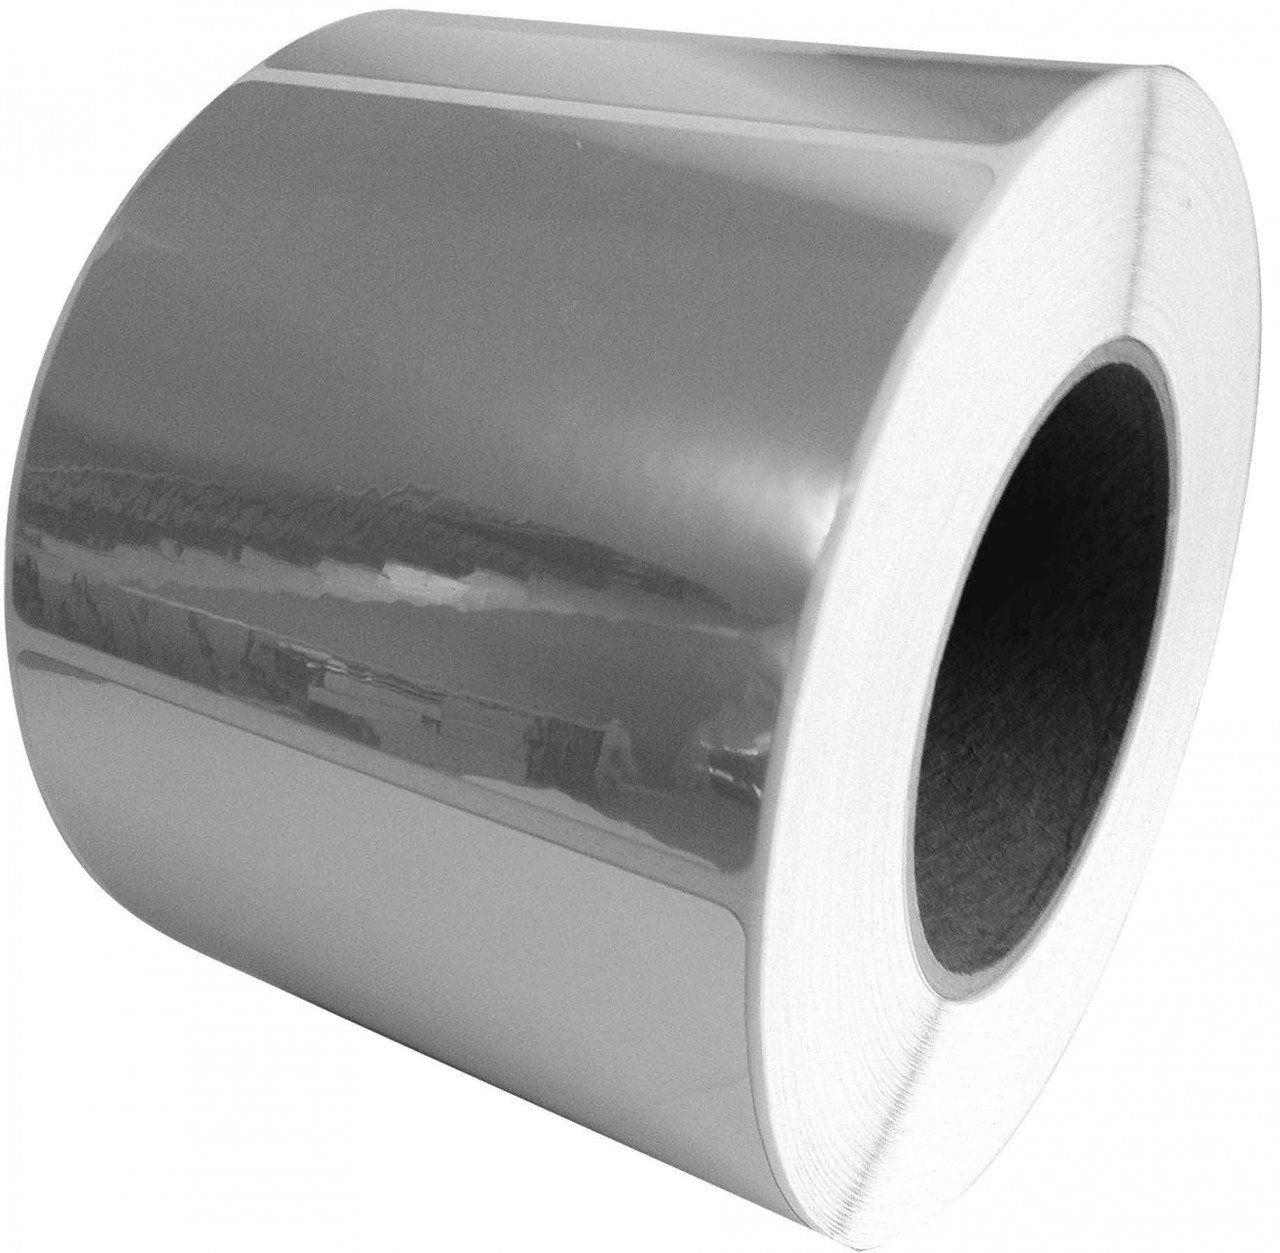 lx900 2 x 1 inkjet silver polyester label 2300 roll